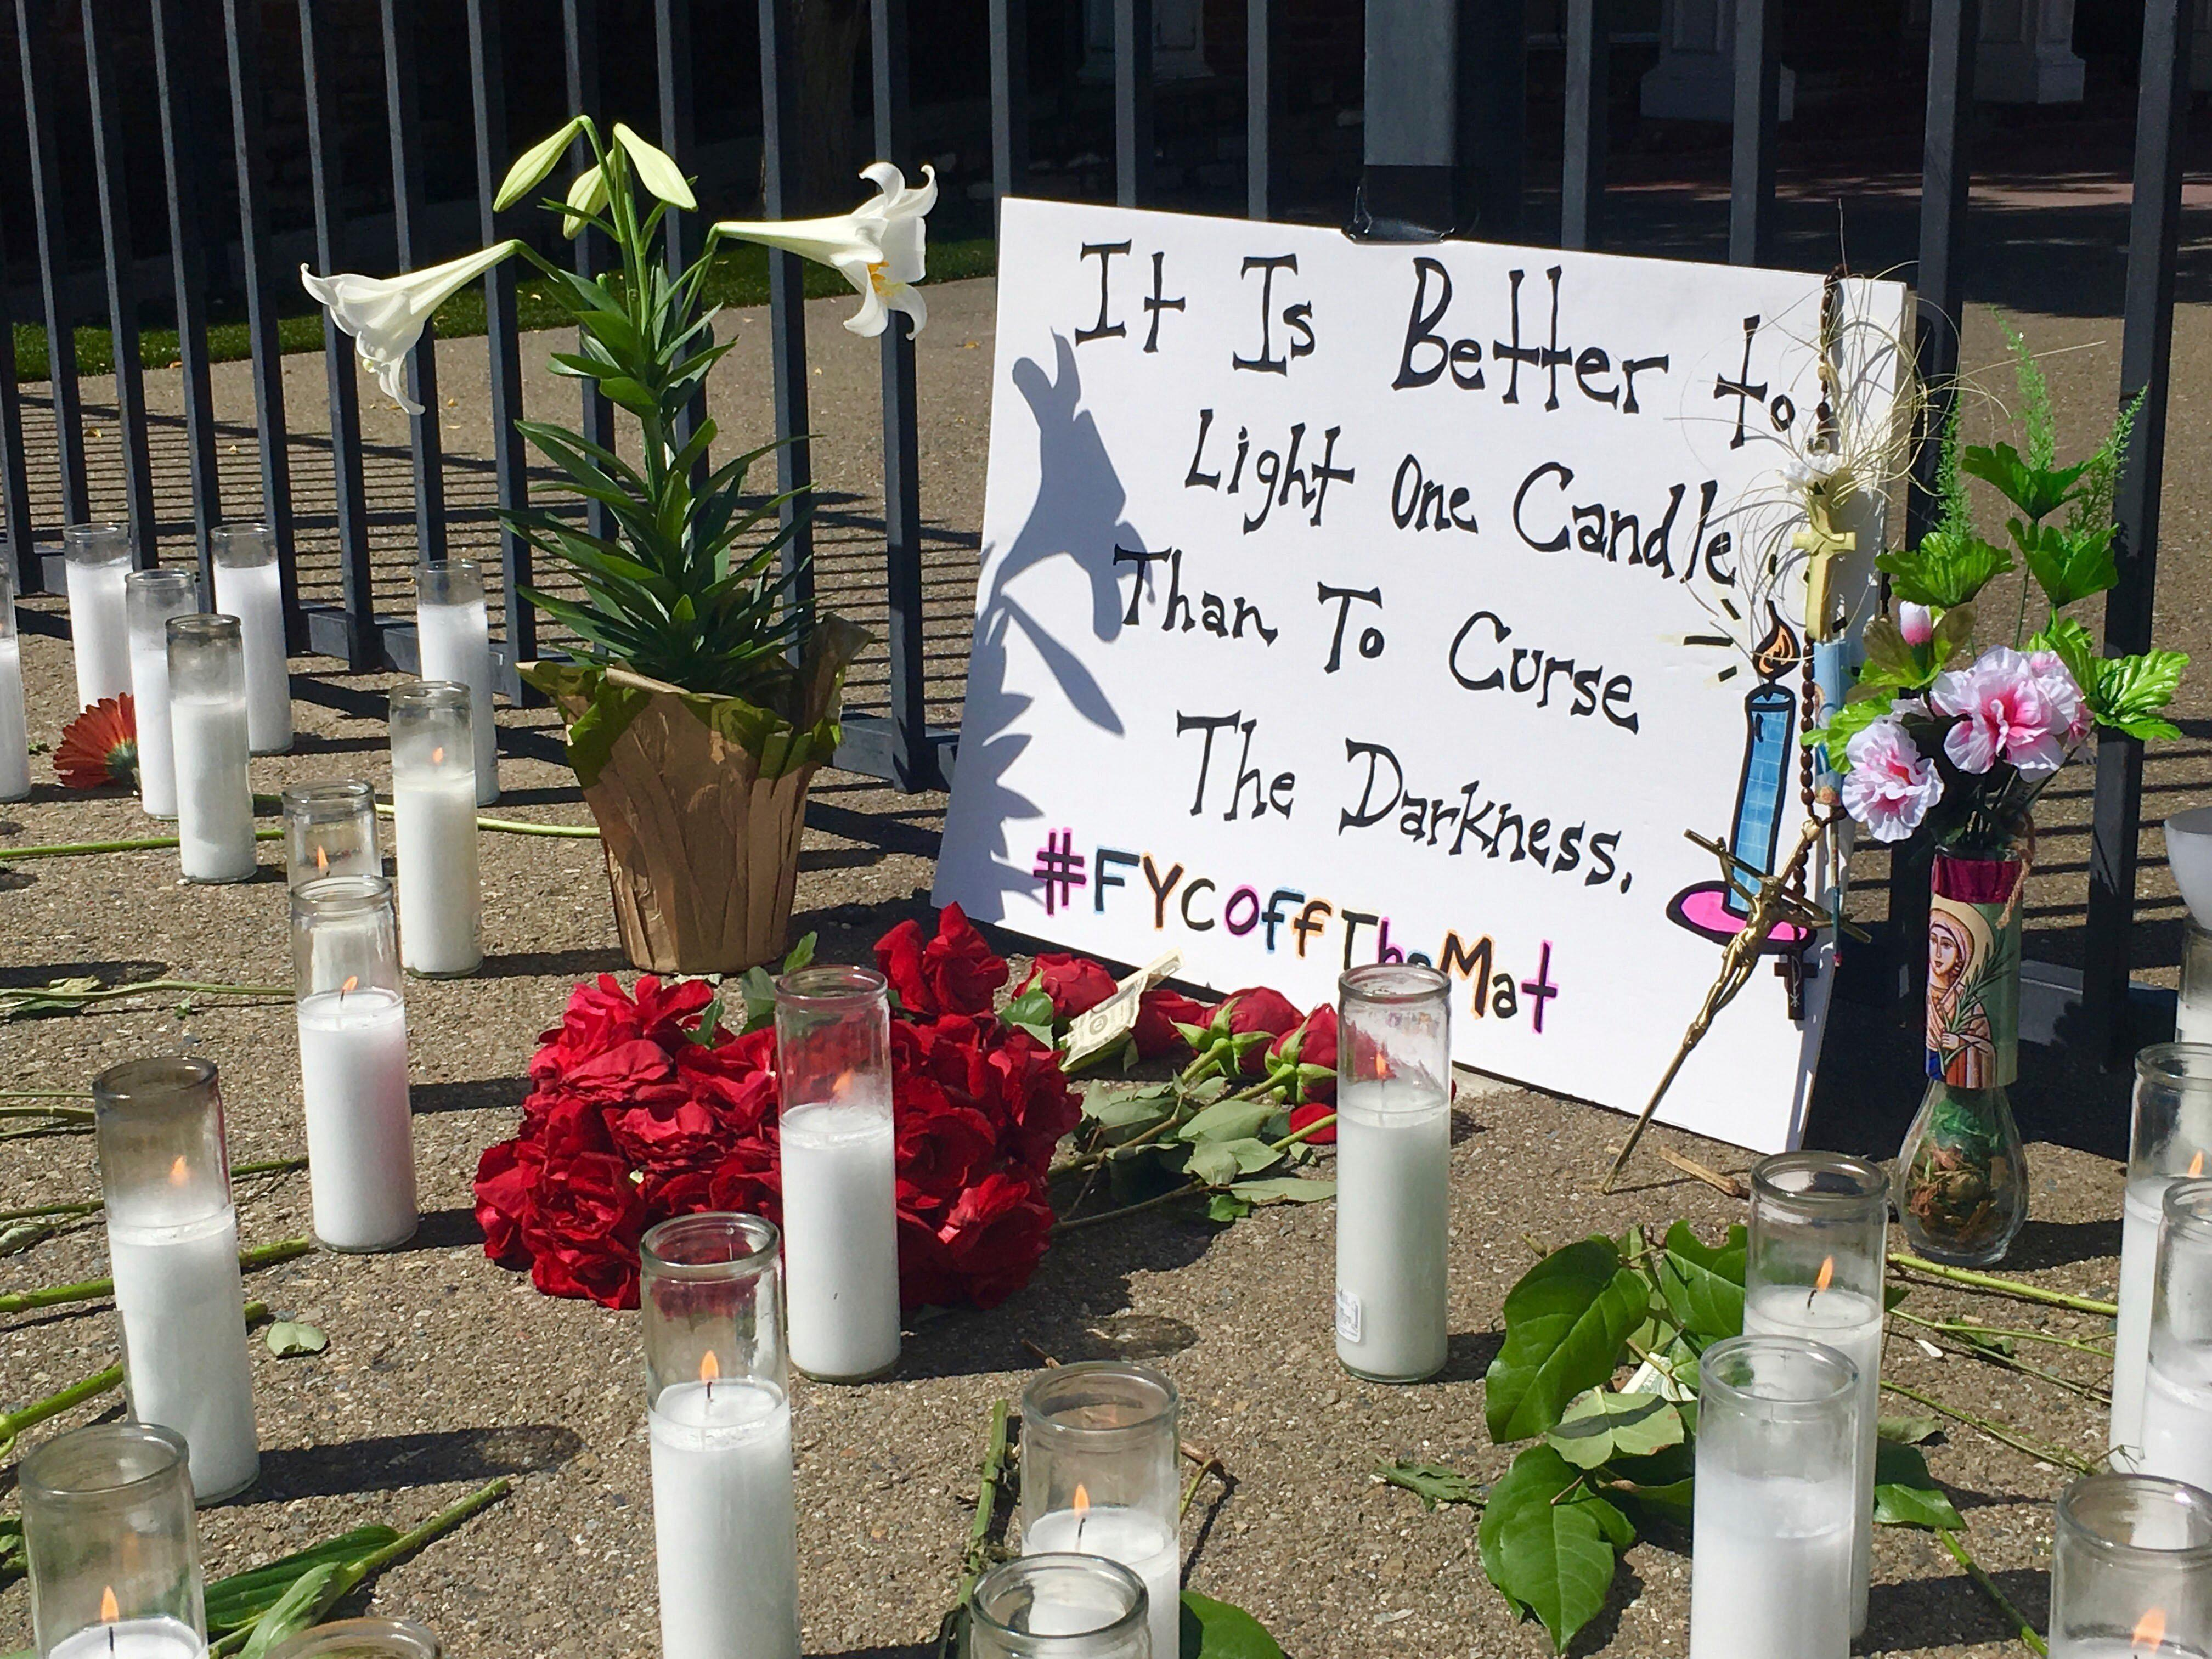 A memorial of candles and flowers honors victims of Tuesday's shooting outside Catholic Charities Wednesday, April 19, 2017 in Fresno, Calif.  Mark Gassett, 37, of Fresno, had just picked up groceries at a Catholic Charities building when he was gunned down. David Jackson, 58, of Fresno, was gunned down in the parking lot of the charity's building.  (Carmen George/The Fresno Bee via AP)